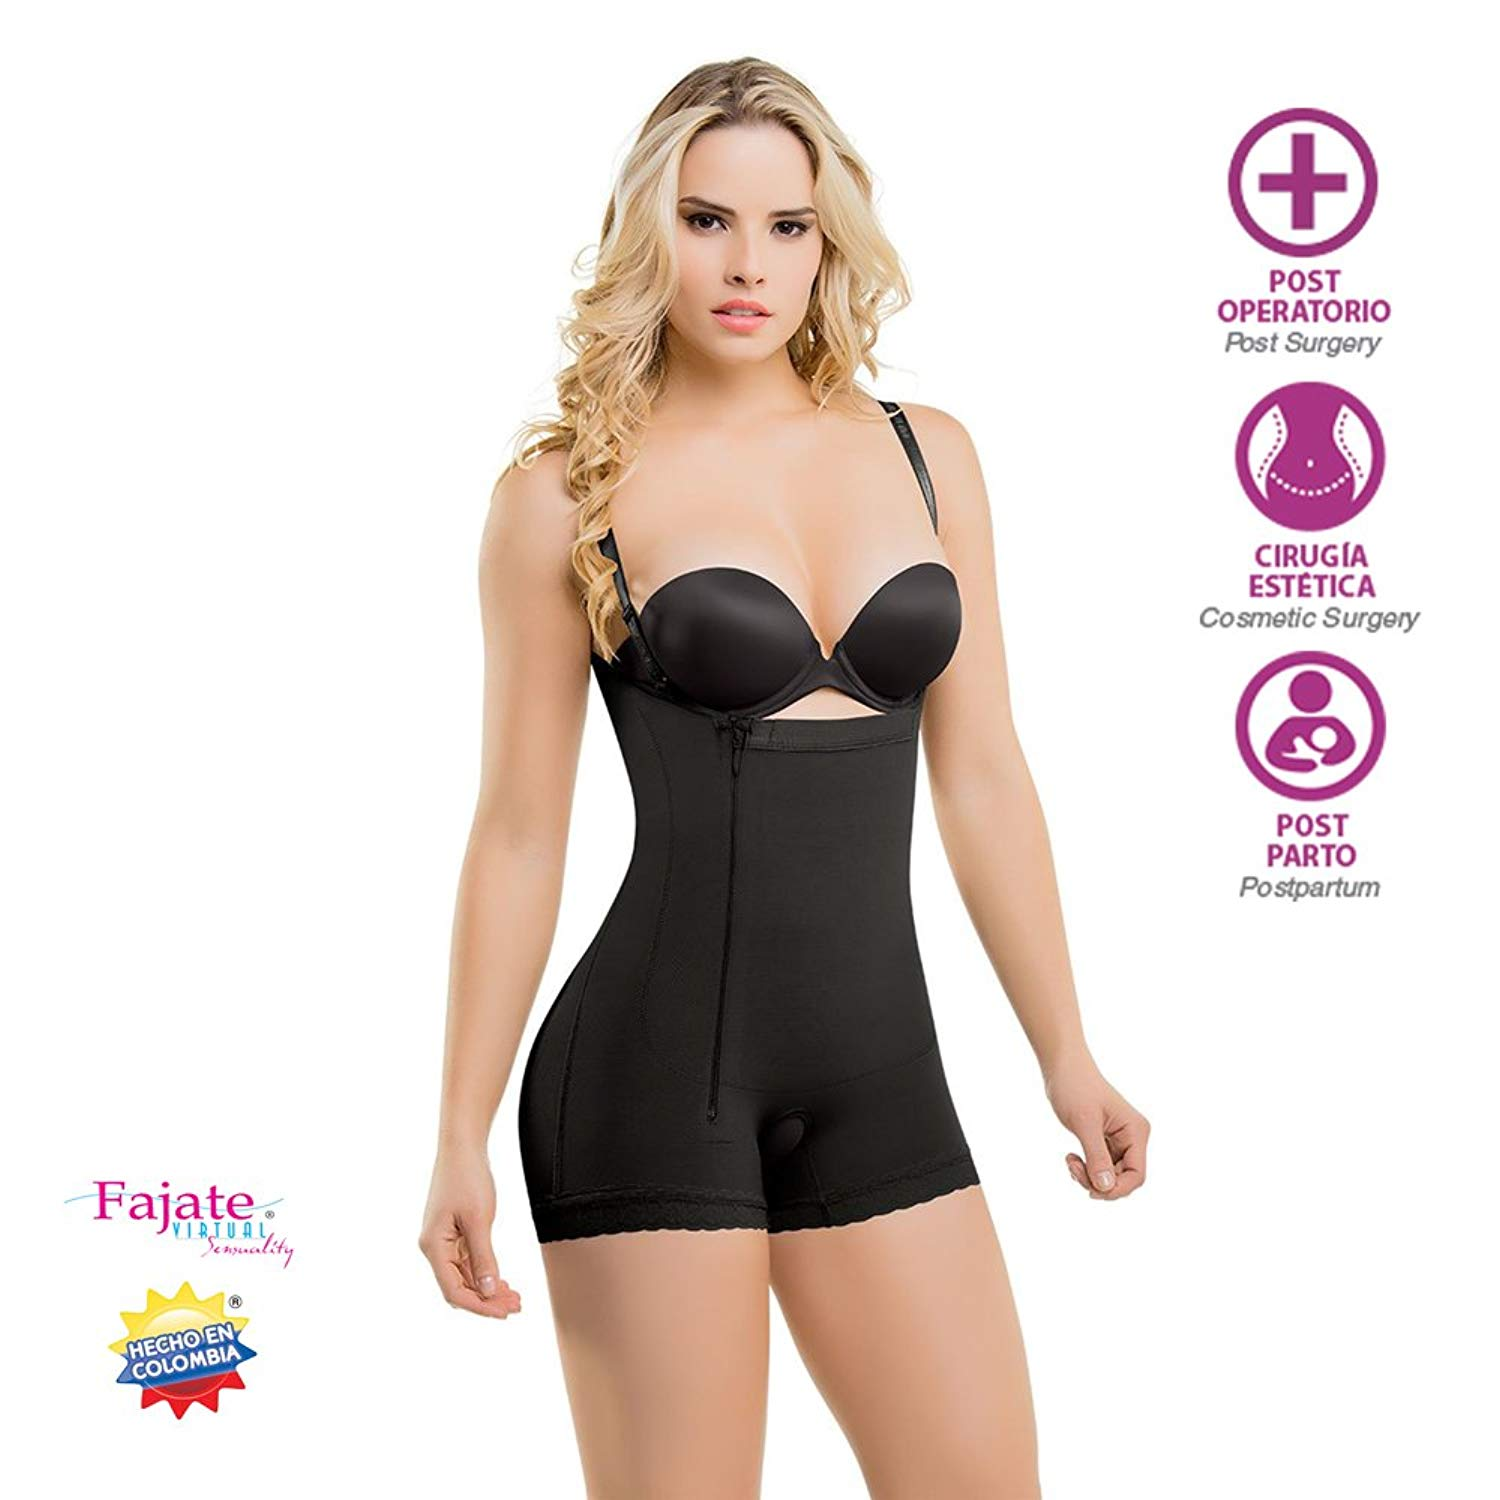 9e9d51f504 Get Quotations · Colombian Post-Surgery Postpartum Body Shaper Girdle  Thin Removable Straps Faja Colombiana Fajate